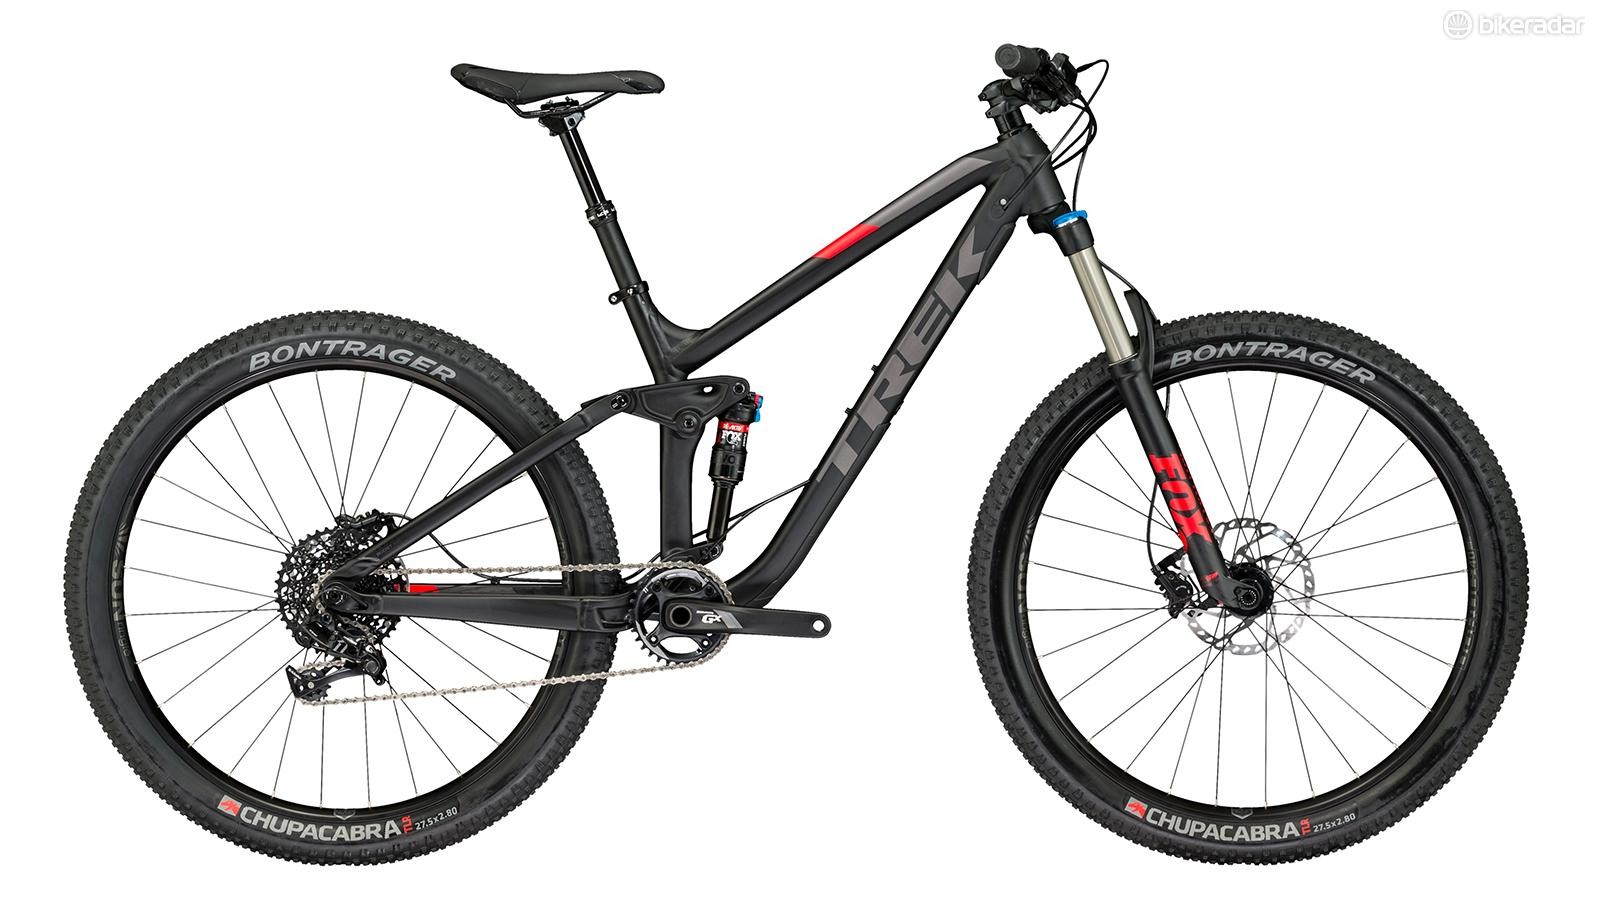 The Trek Fuel EX 8 27.5 Plus